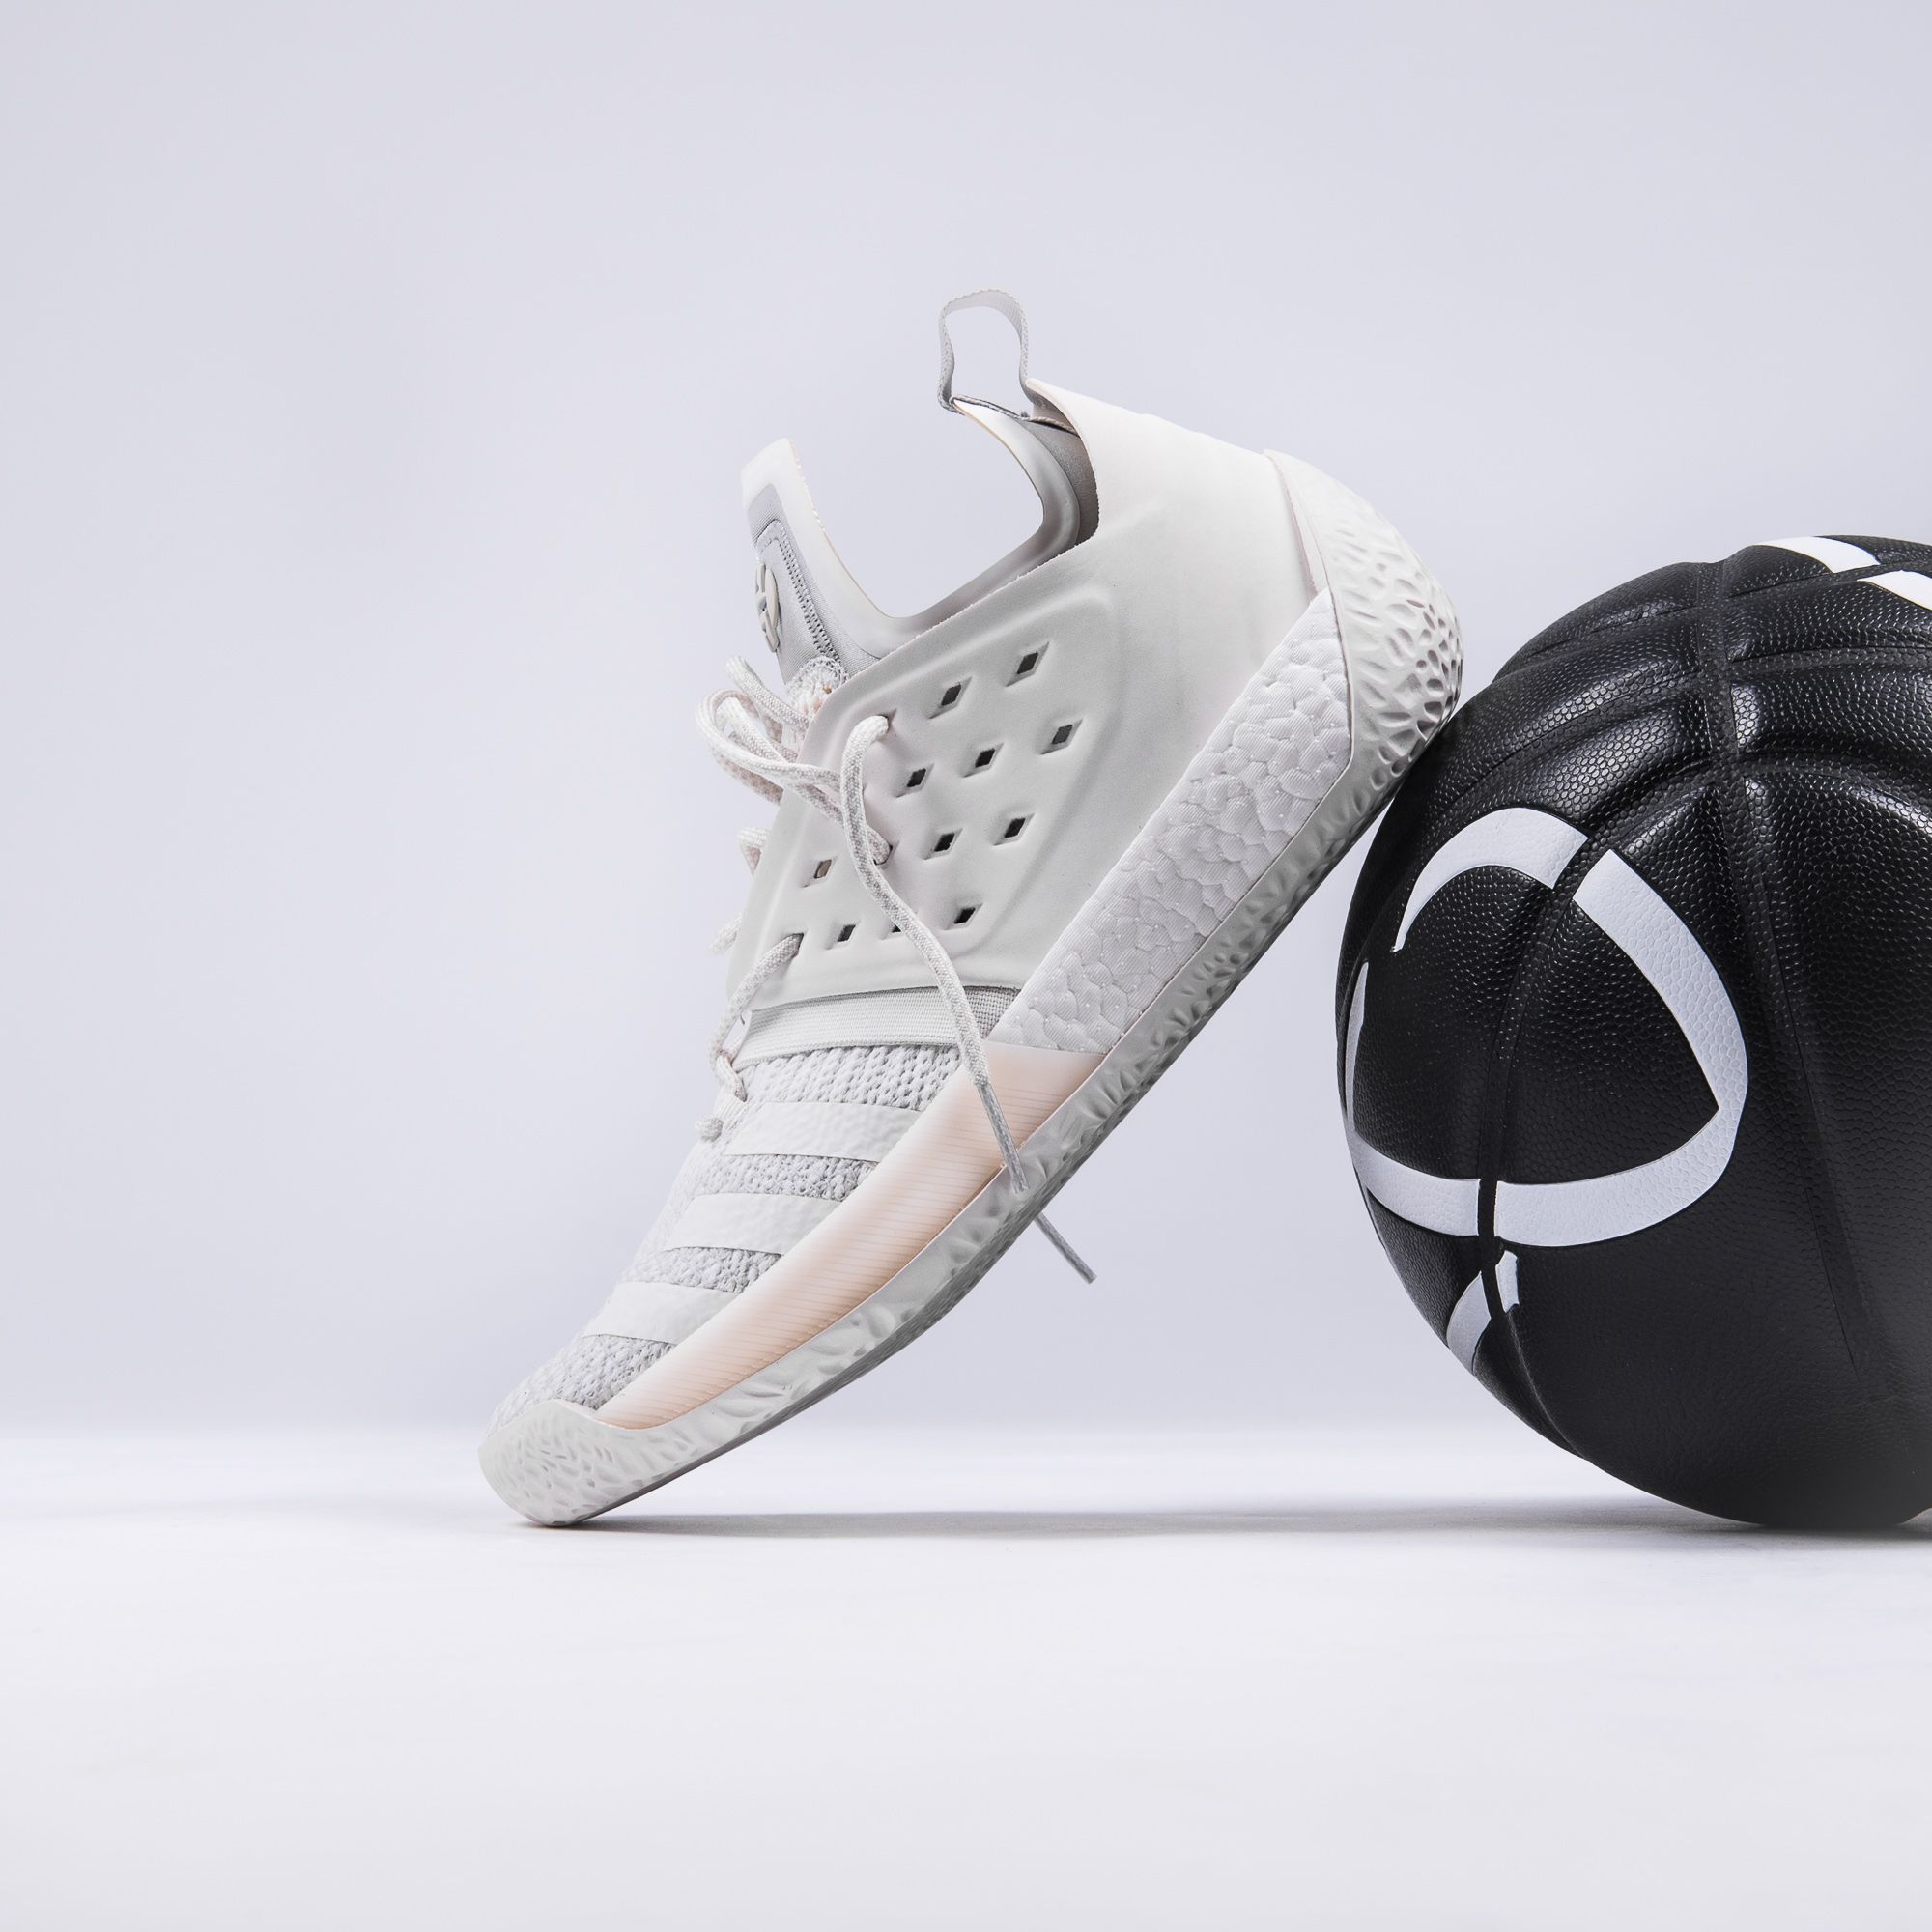 If You Want To Feel Like Walking On Air You Gotta Get These Cloud White Adidas Harden Vol2 Cop Yours On Kickz C Adidas Basketball Shoes Best Basketball Shoes